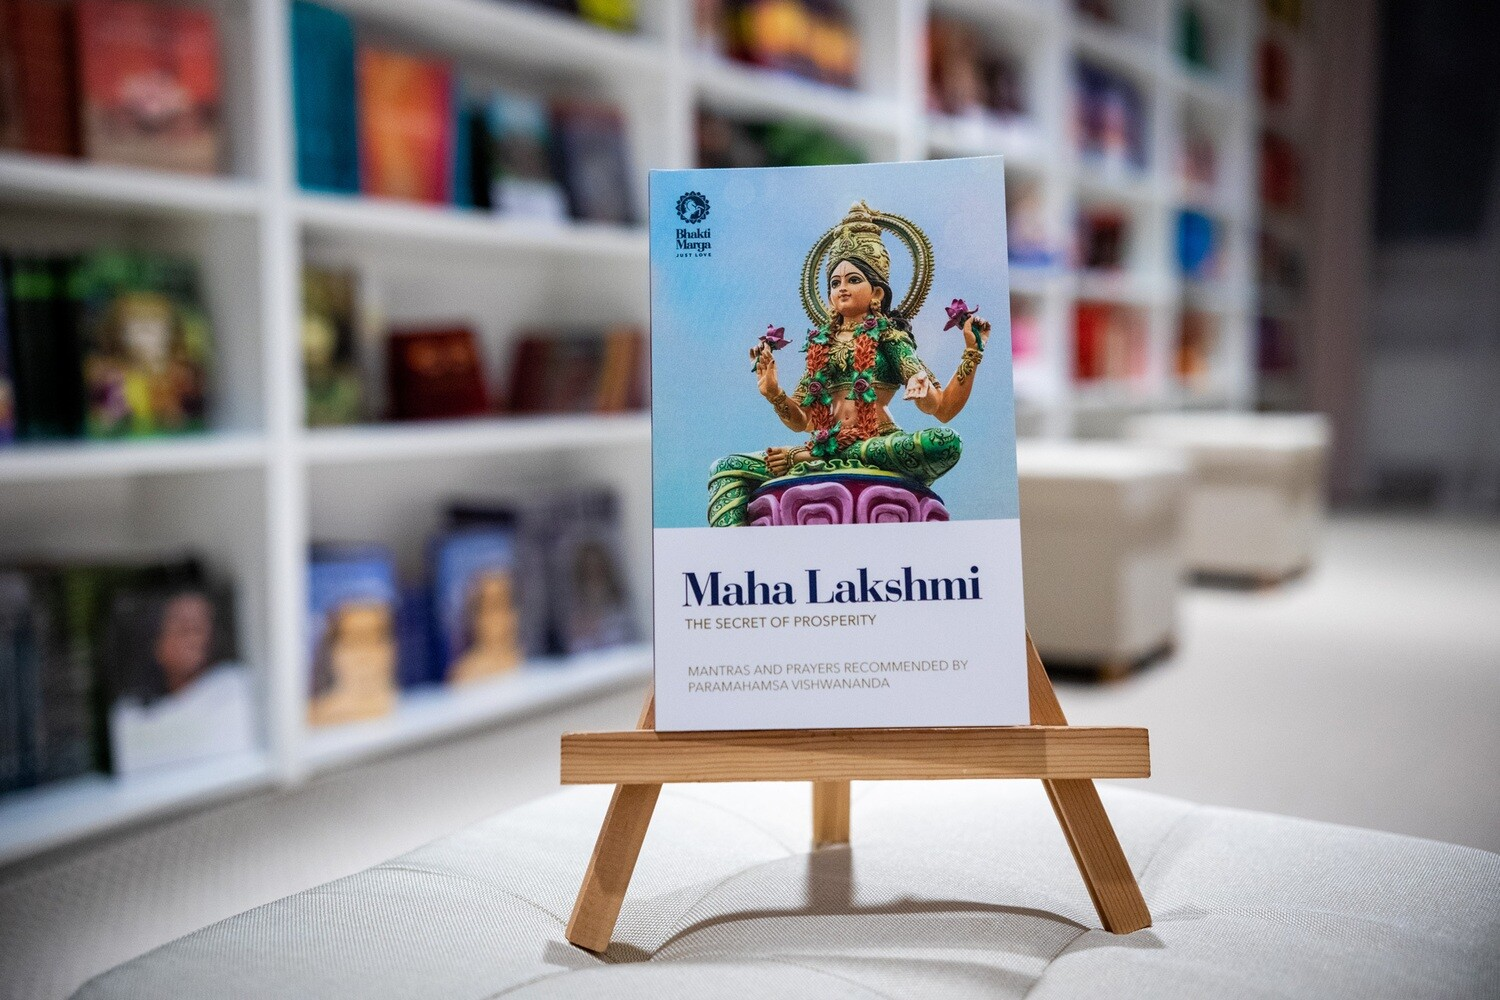 Maha Lakshmi: The Secret of Prosperity